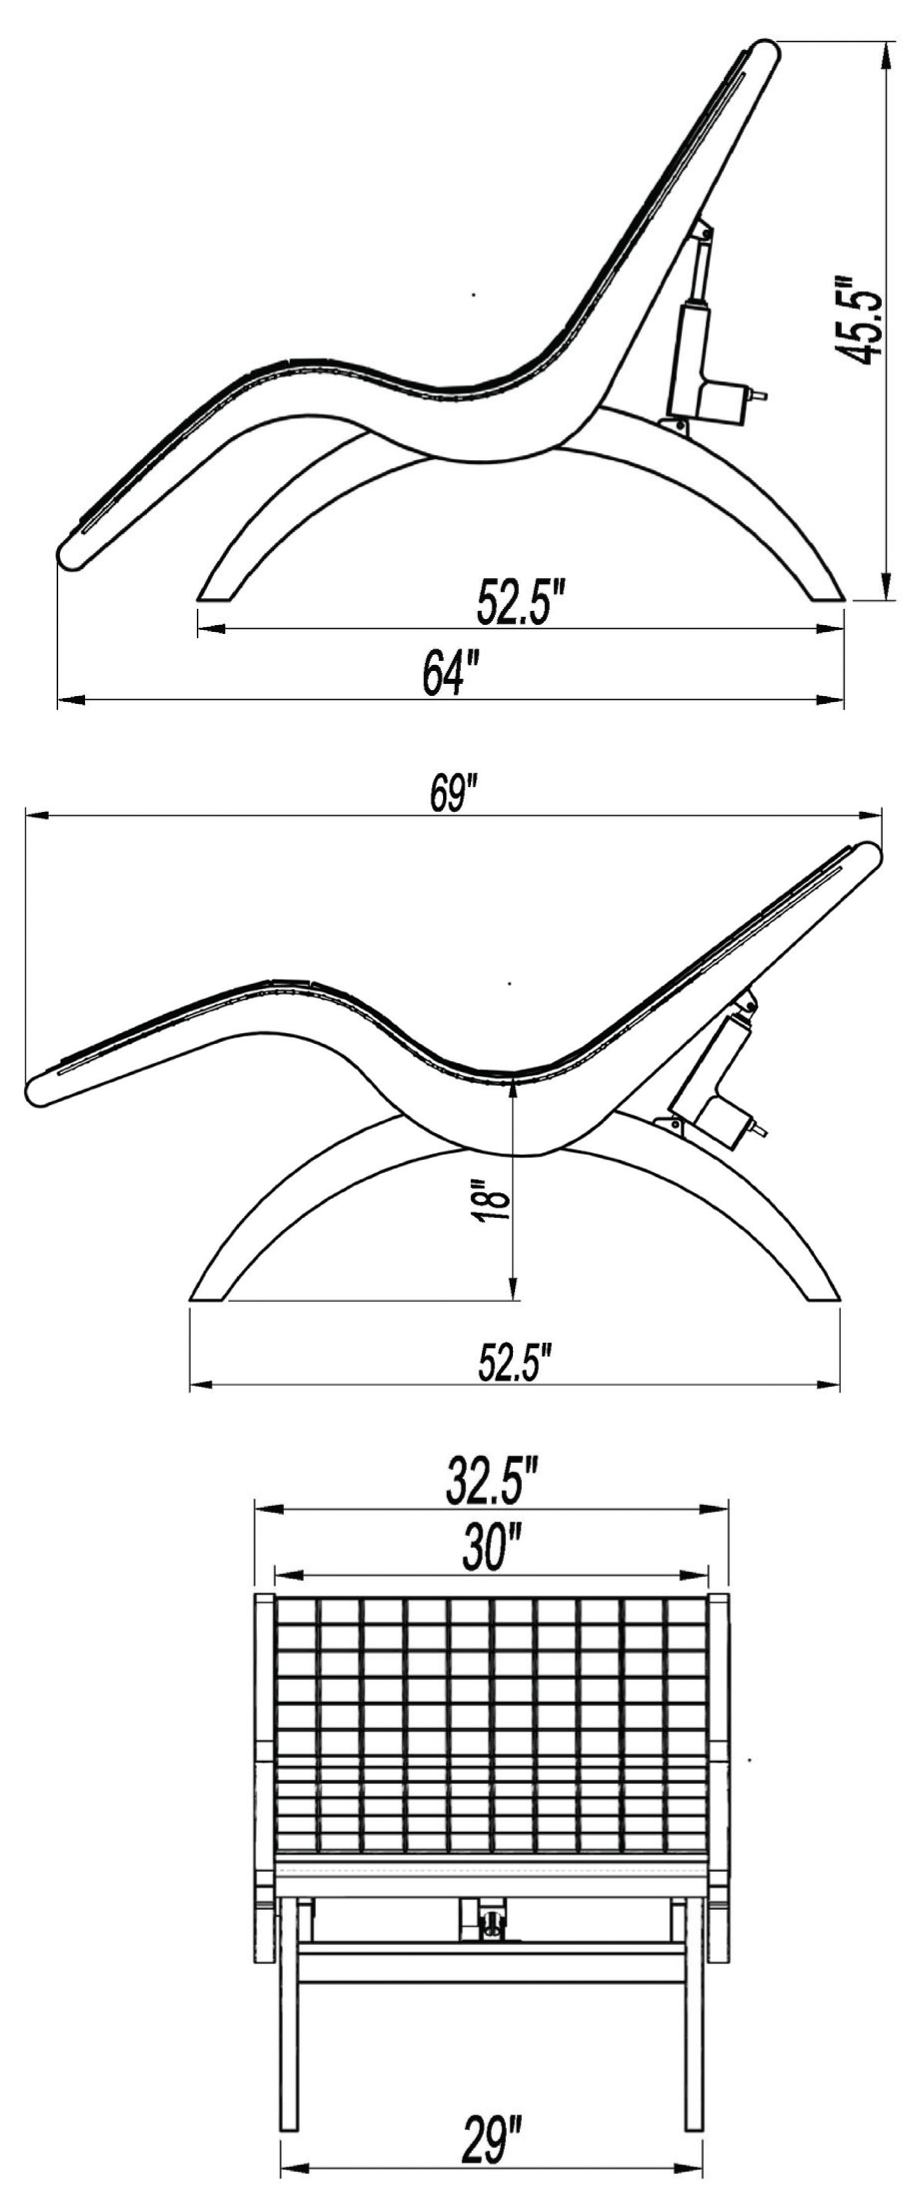 S-Lounge Dimensions